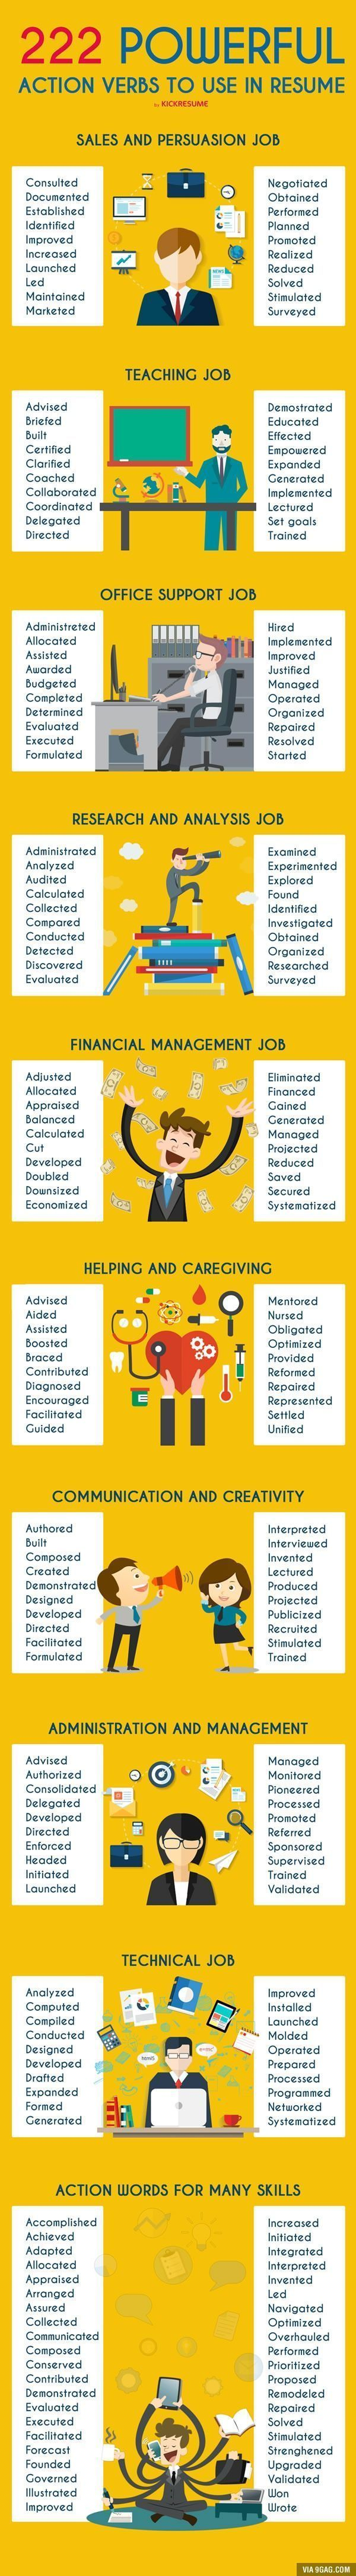 resume cheat sheet  222 action verbs to use in your new